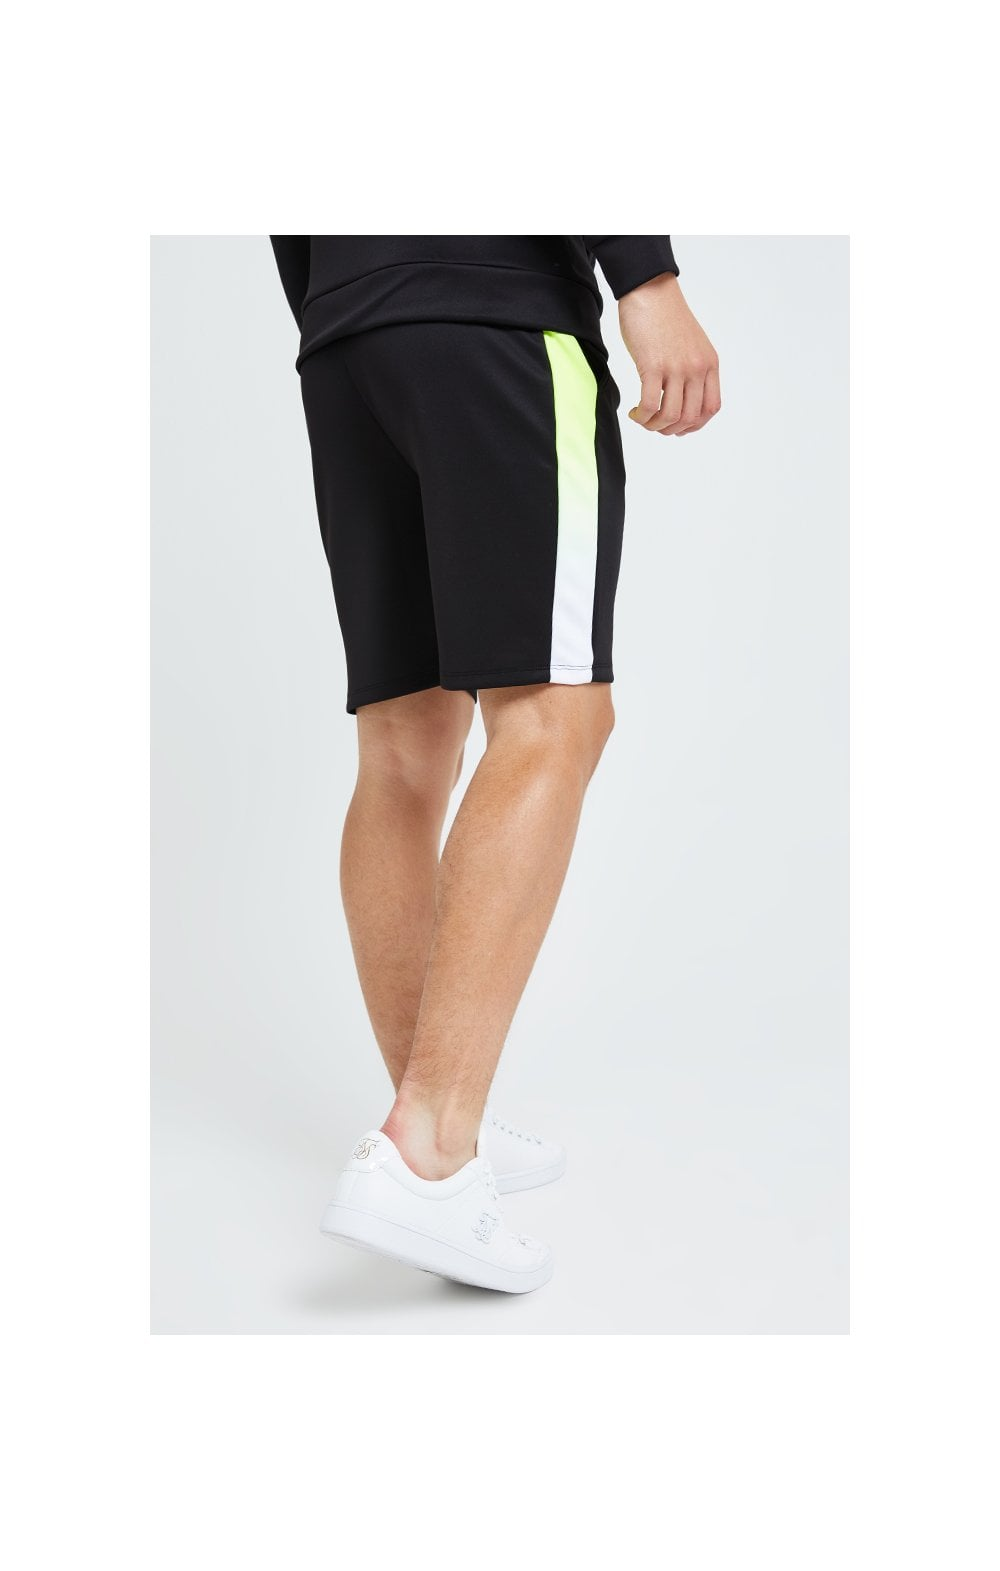 Load image into Gallery viewer, Illusive London Fade Panel Shorts - Black Neon (3)